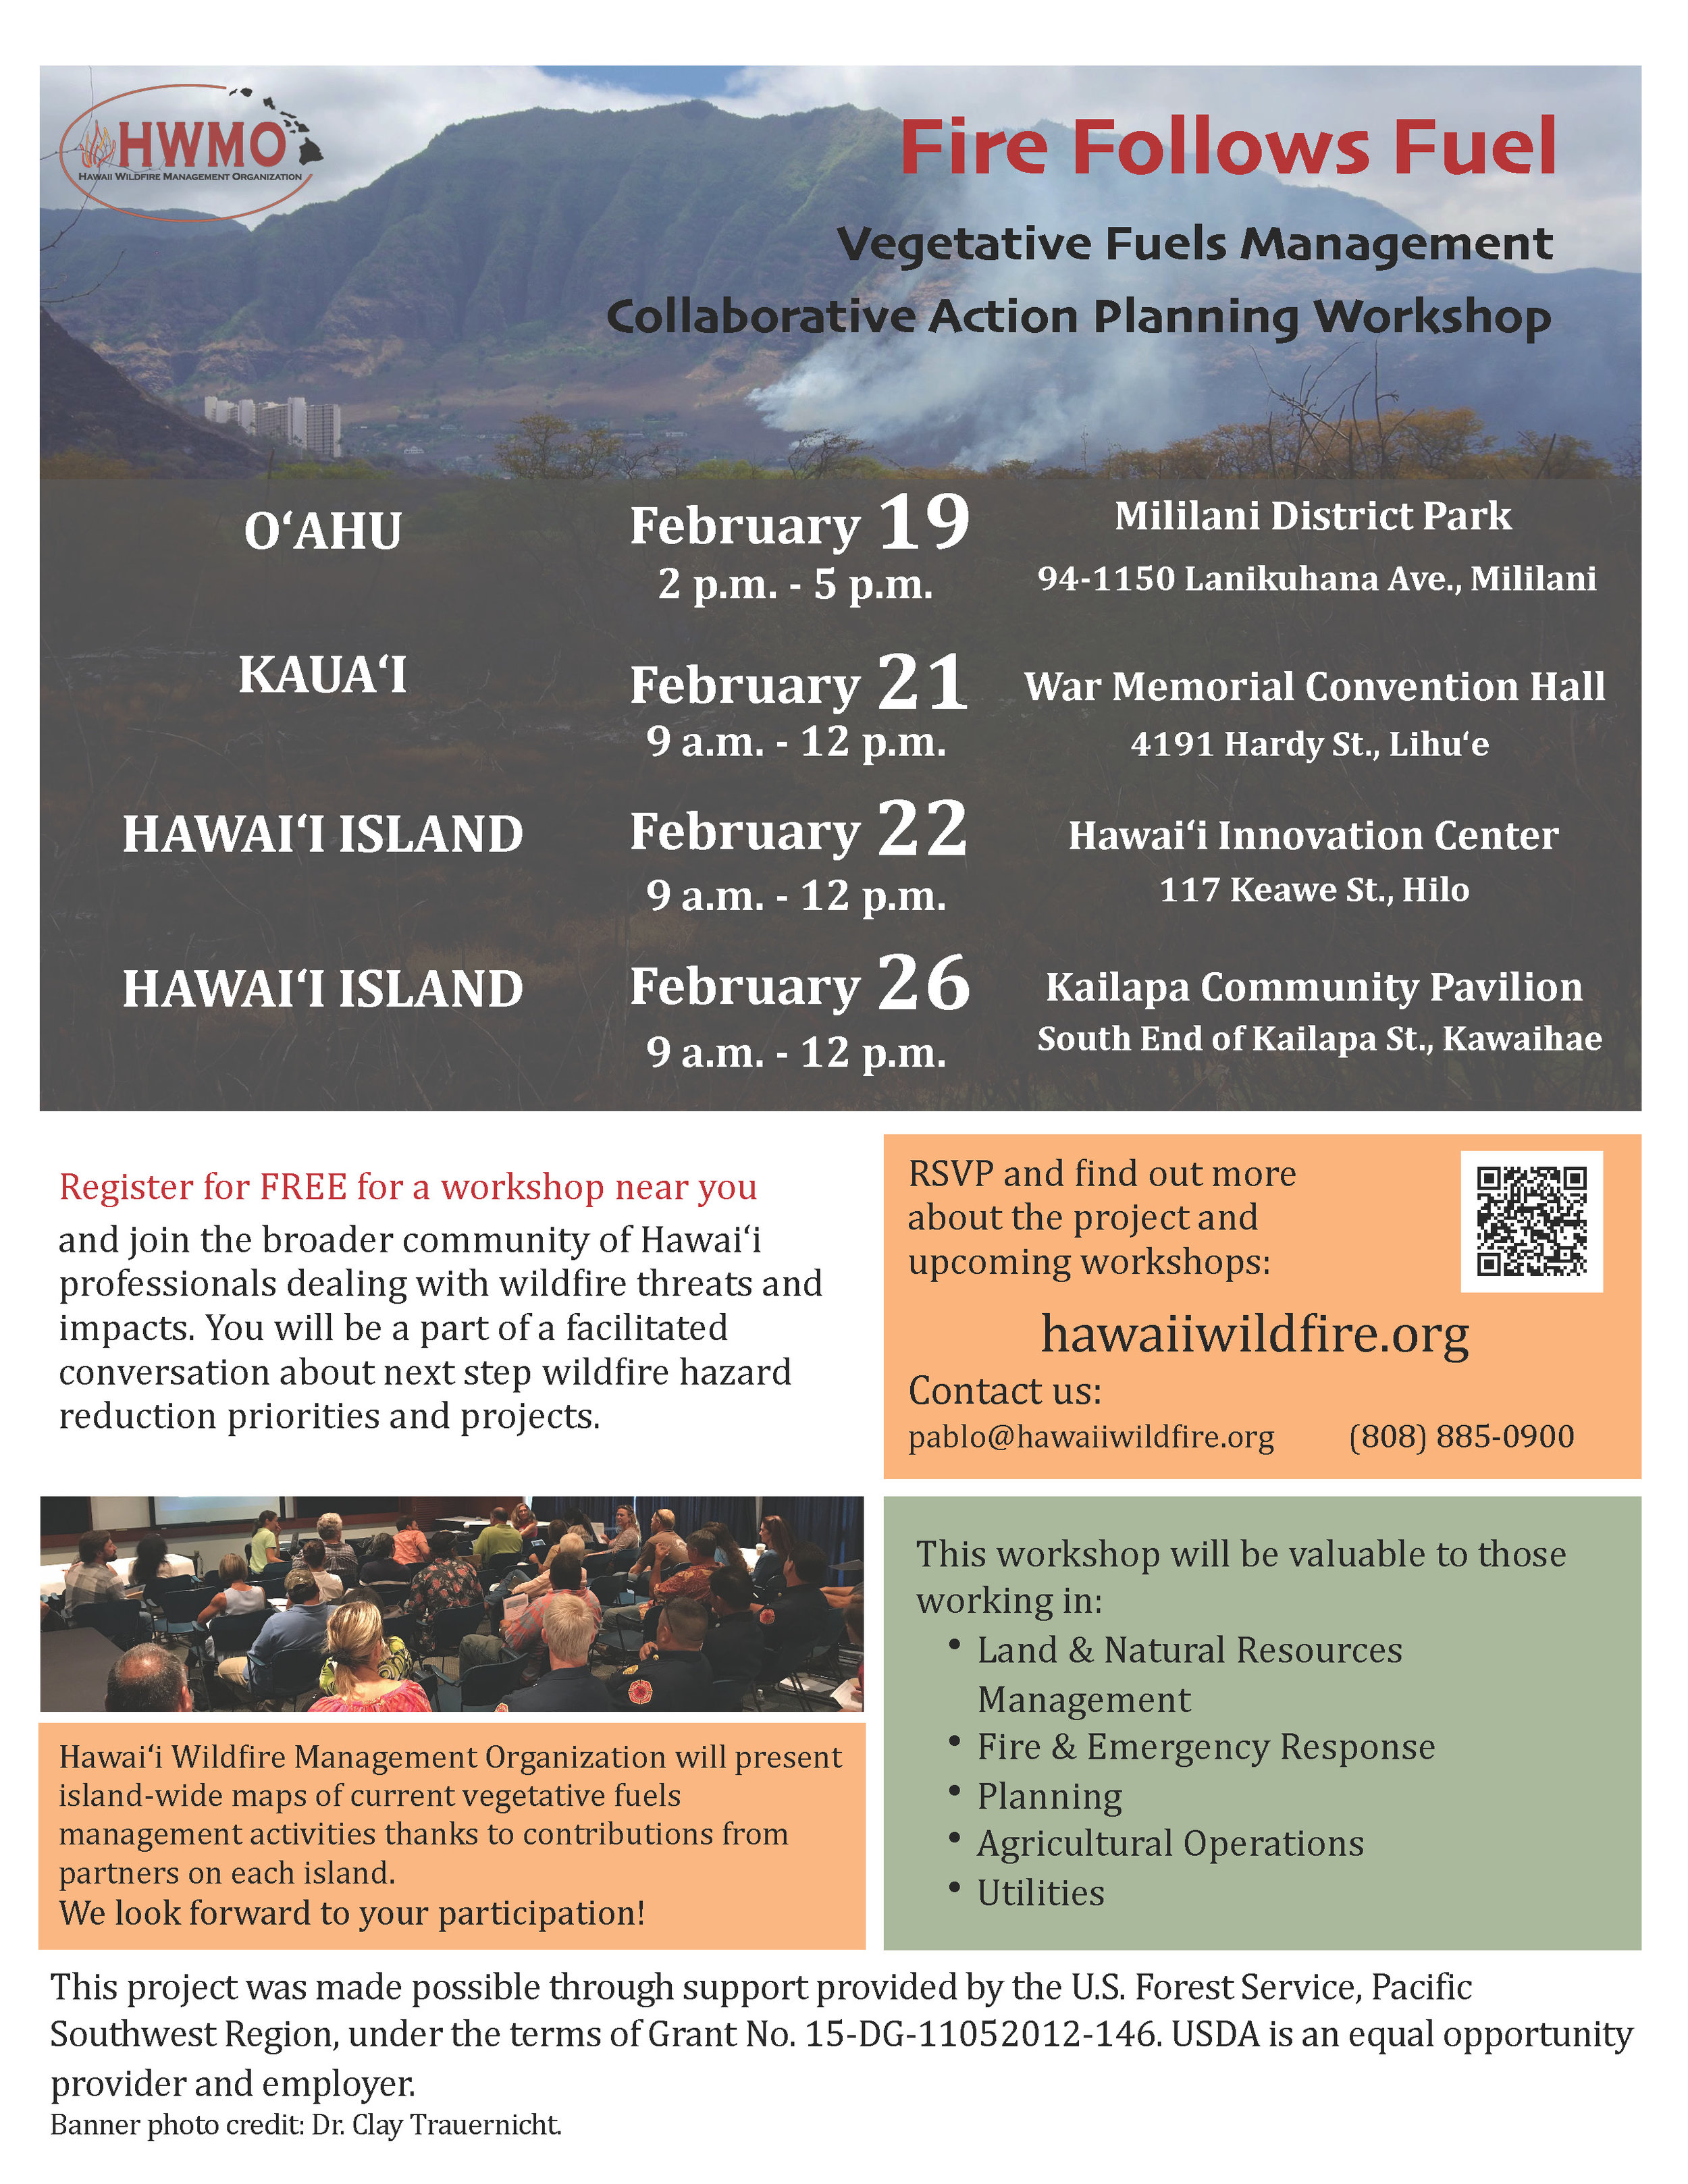 Big Island-Oahu-Kauai Vegetative Fuels Management Collaborative Action Planning Flyer_with Locations_HWMO.jpg